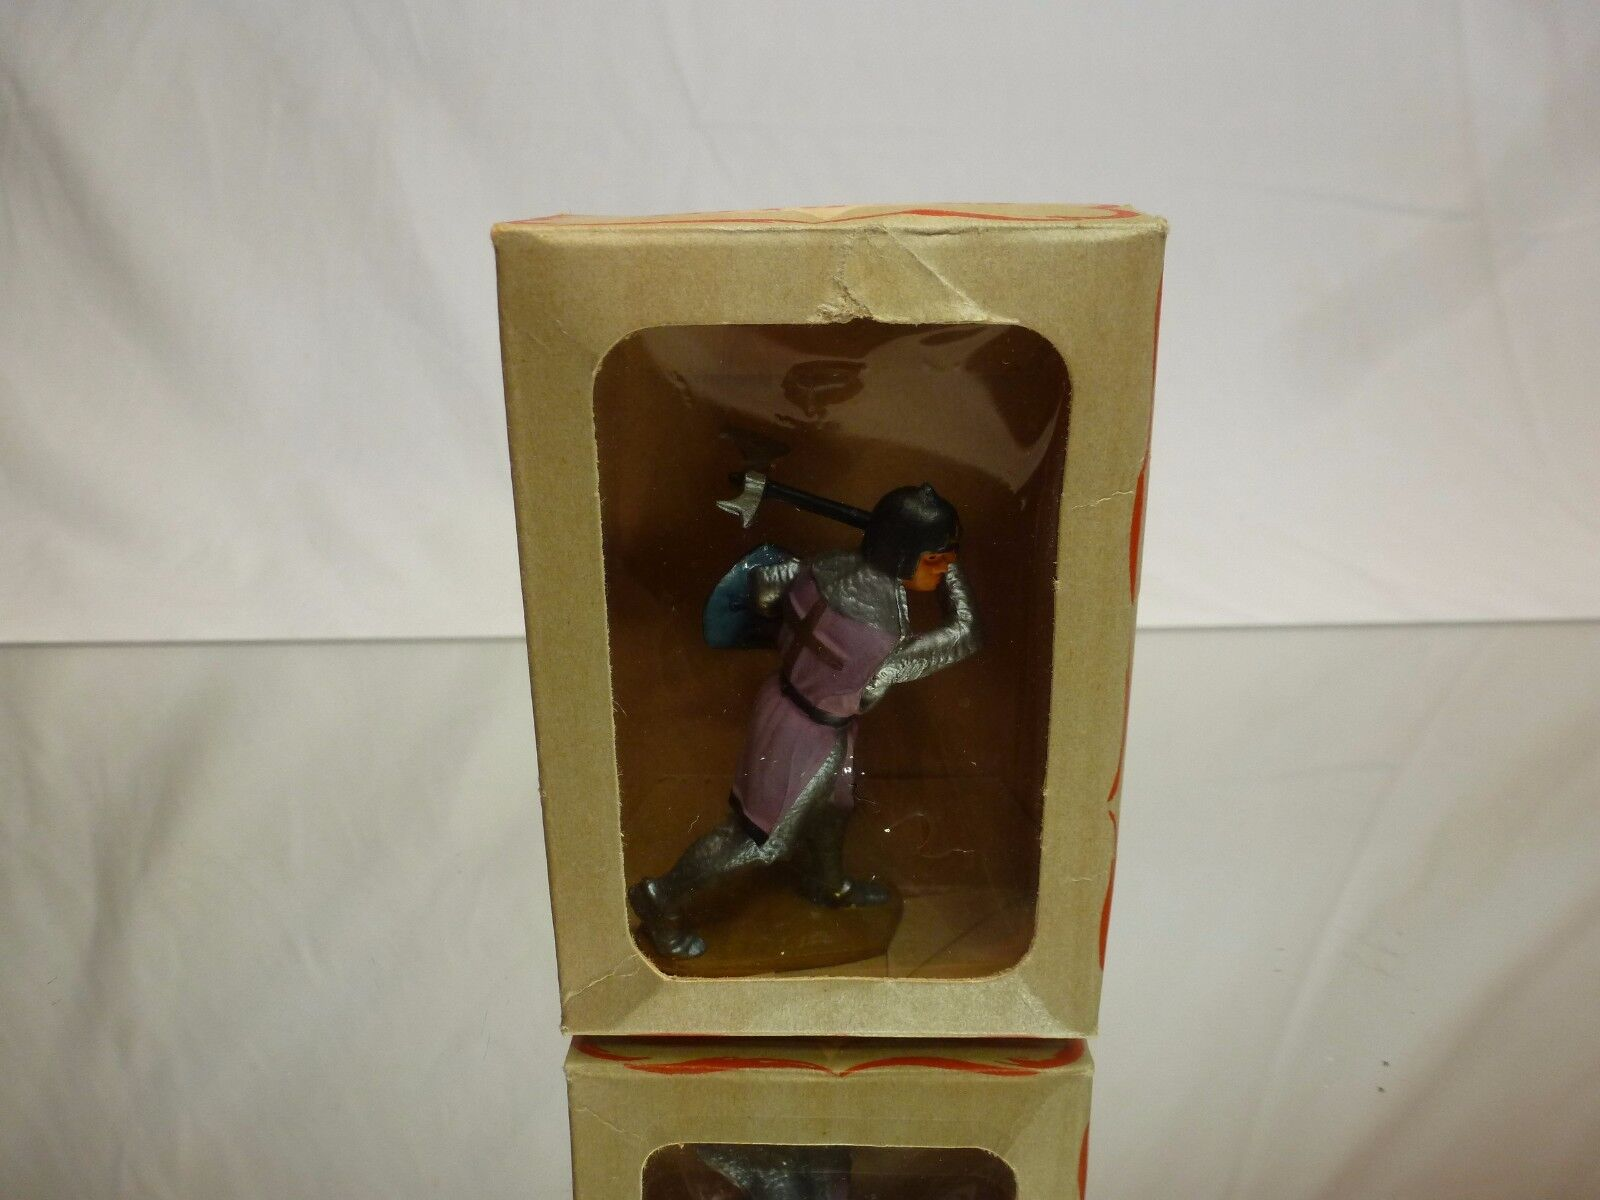 STARLUX 6009 ACTION FIGURE KNIGHT + AXE - grigio+violaC H6.5cm VINTAGE- GOOD IN BOX